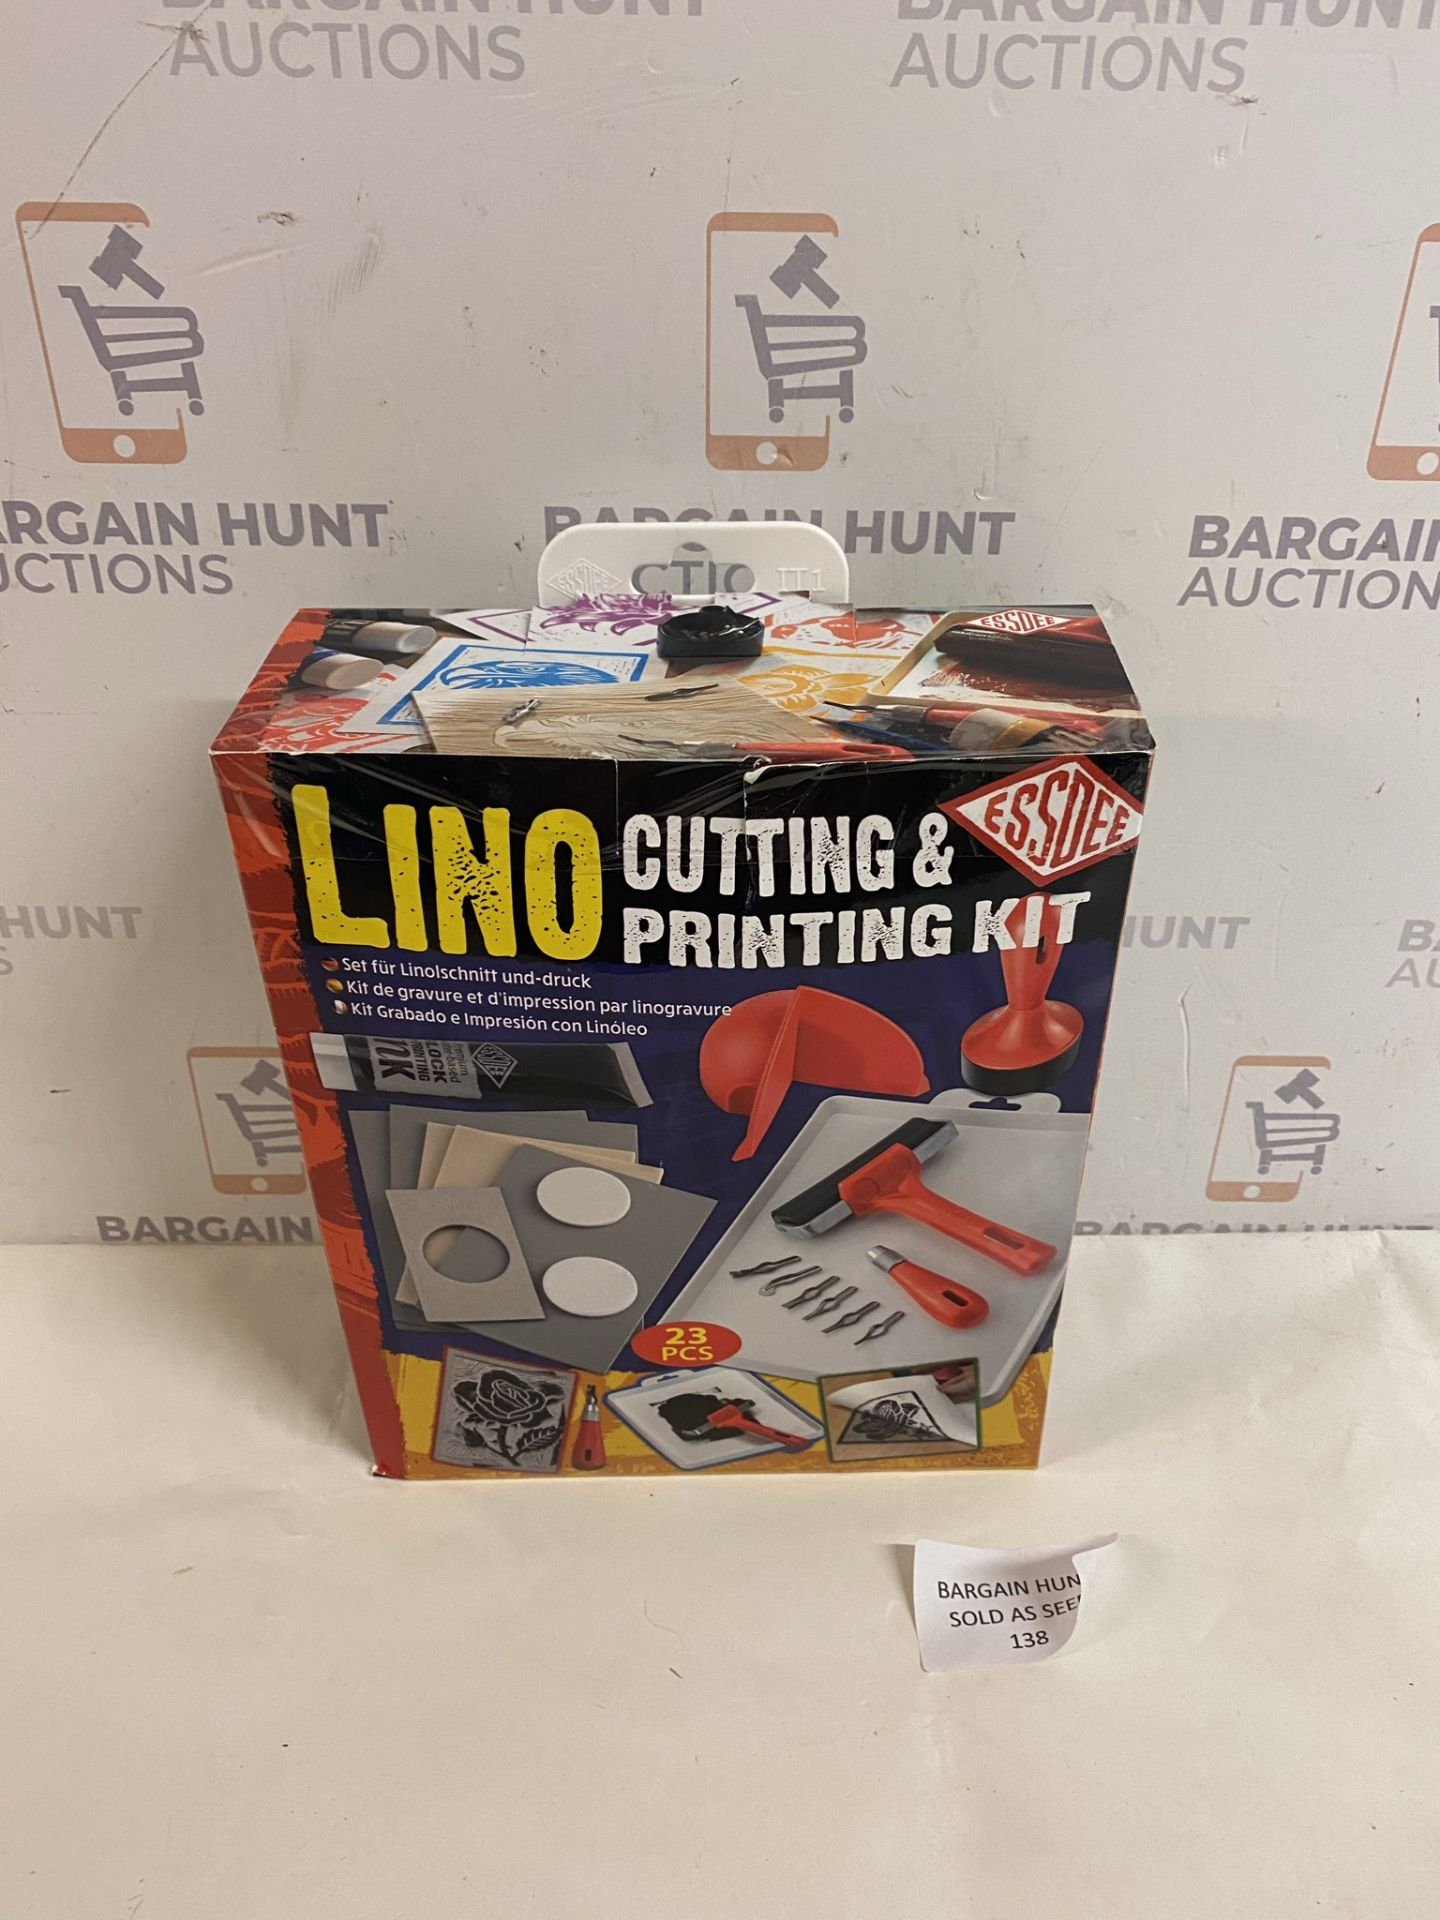 Lino Cutting & Printing Kit (for contents, see image)